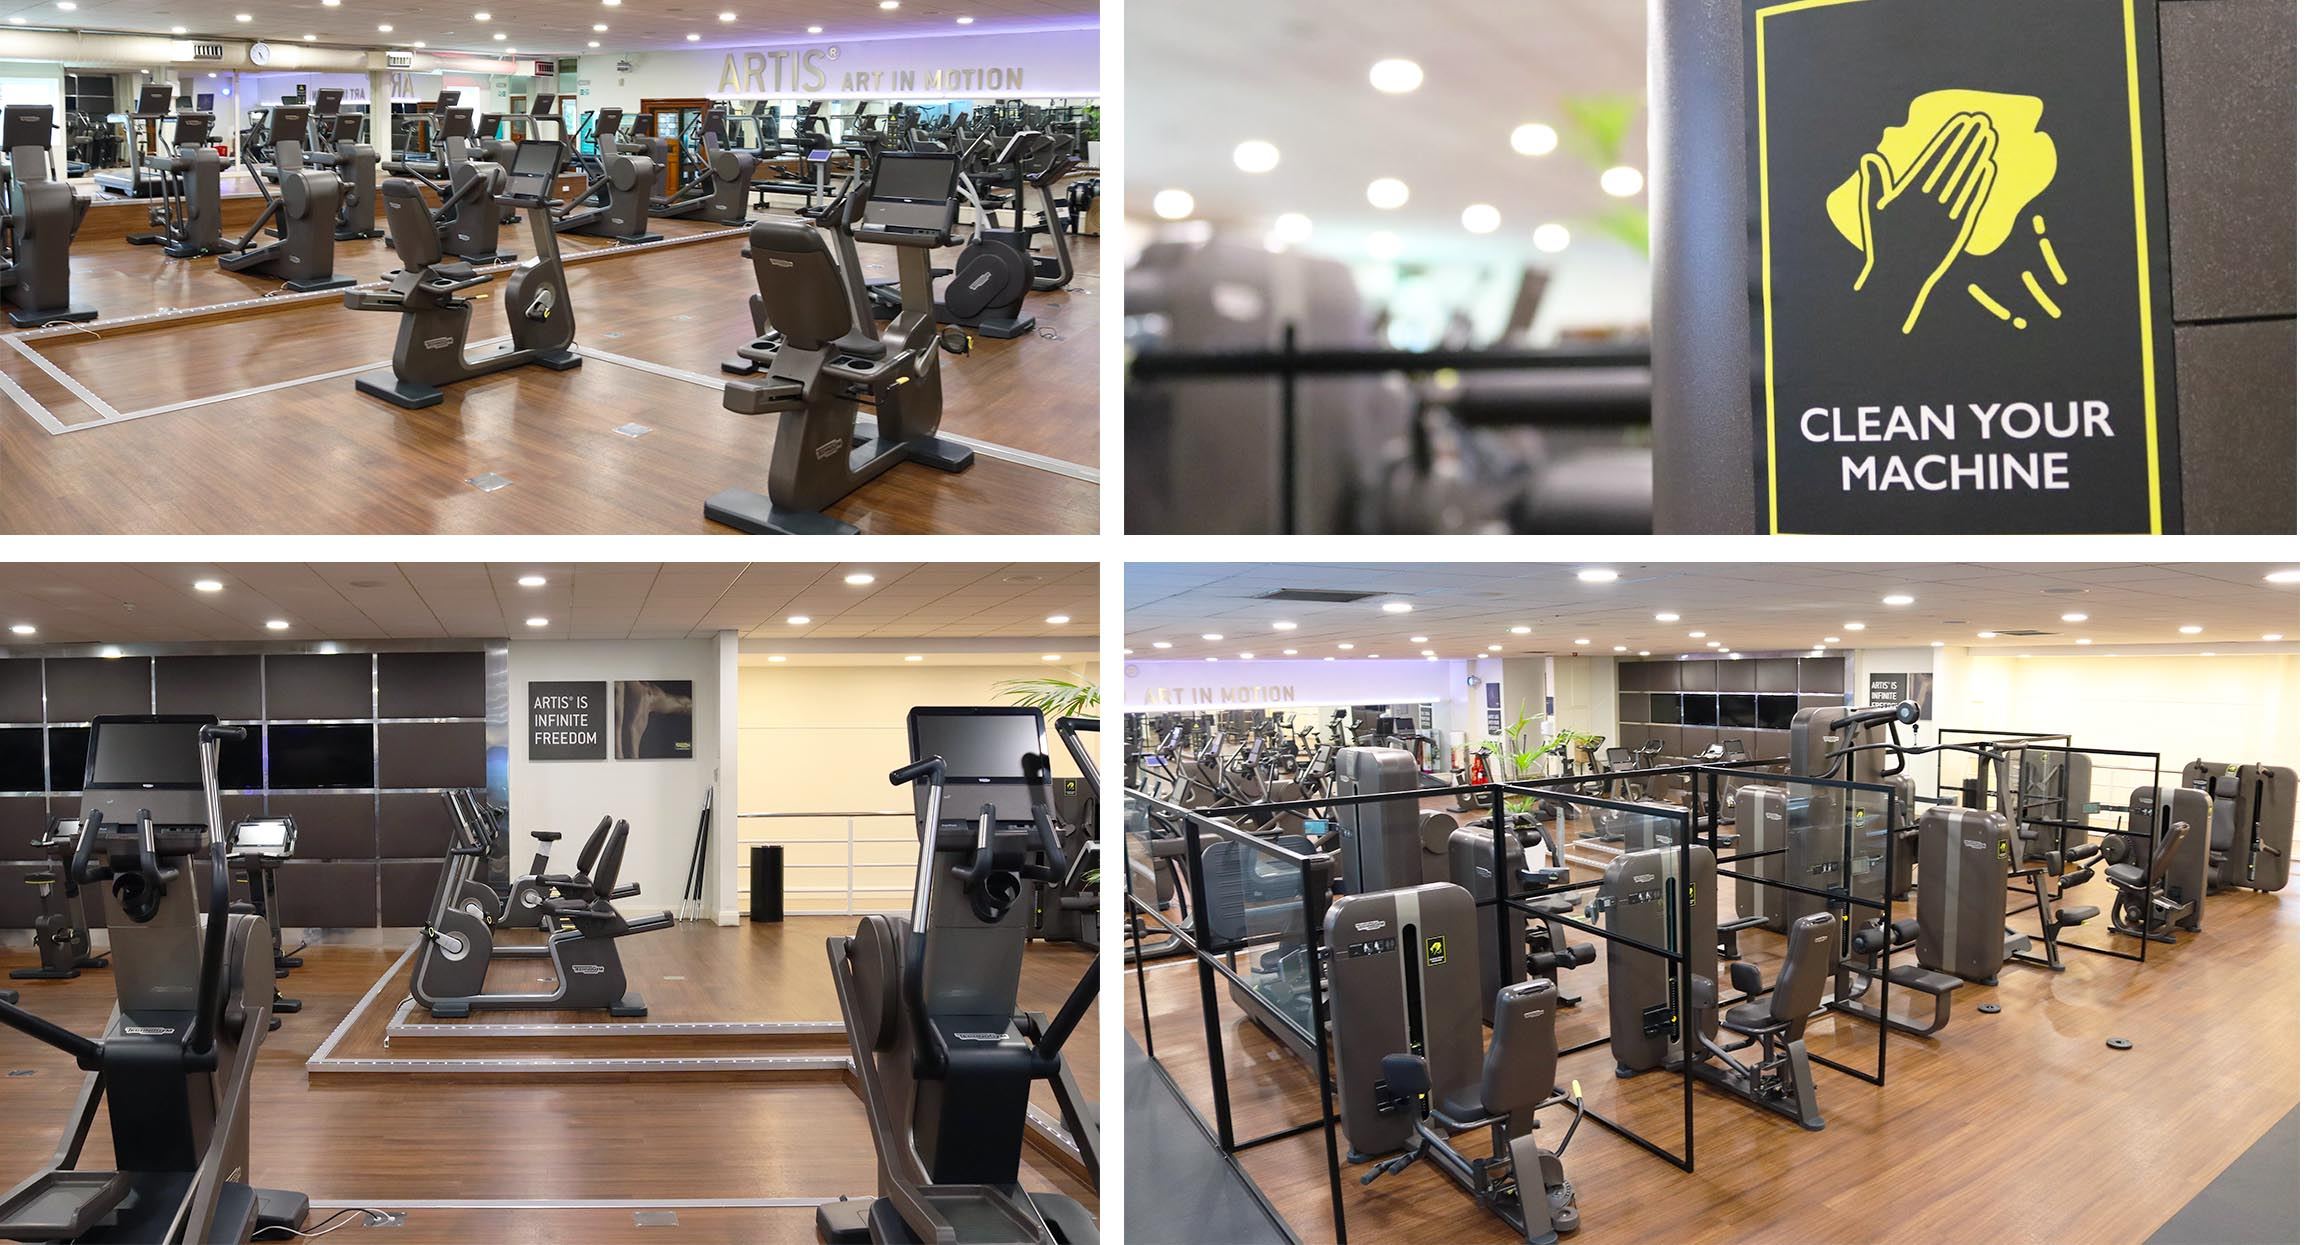 Hogarth gym chiswick social distancing